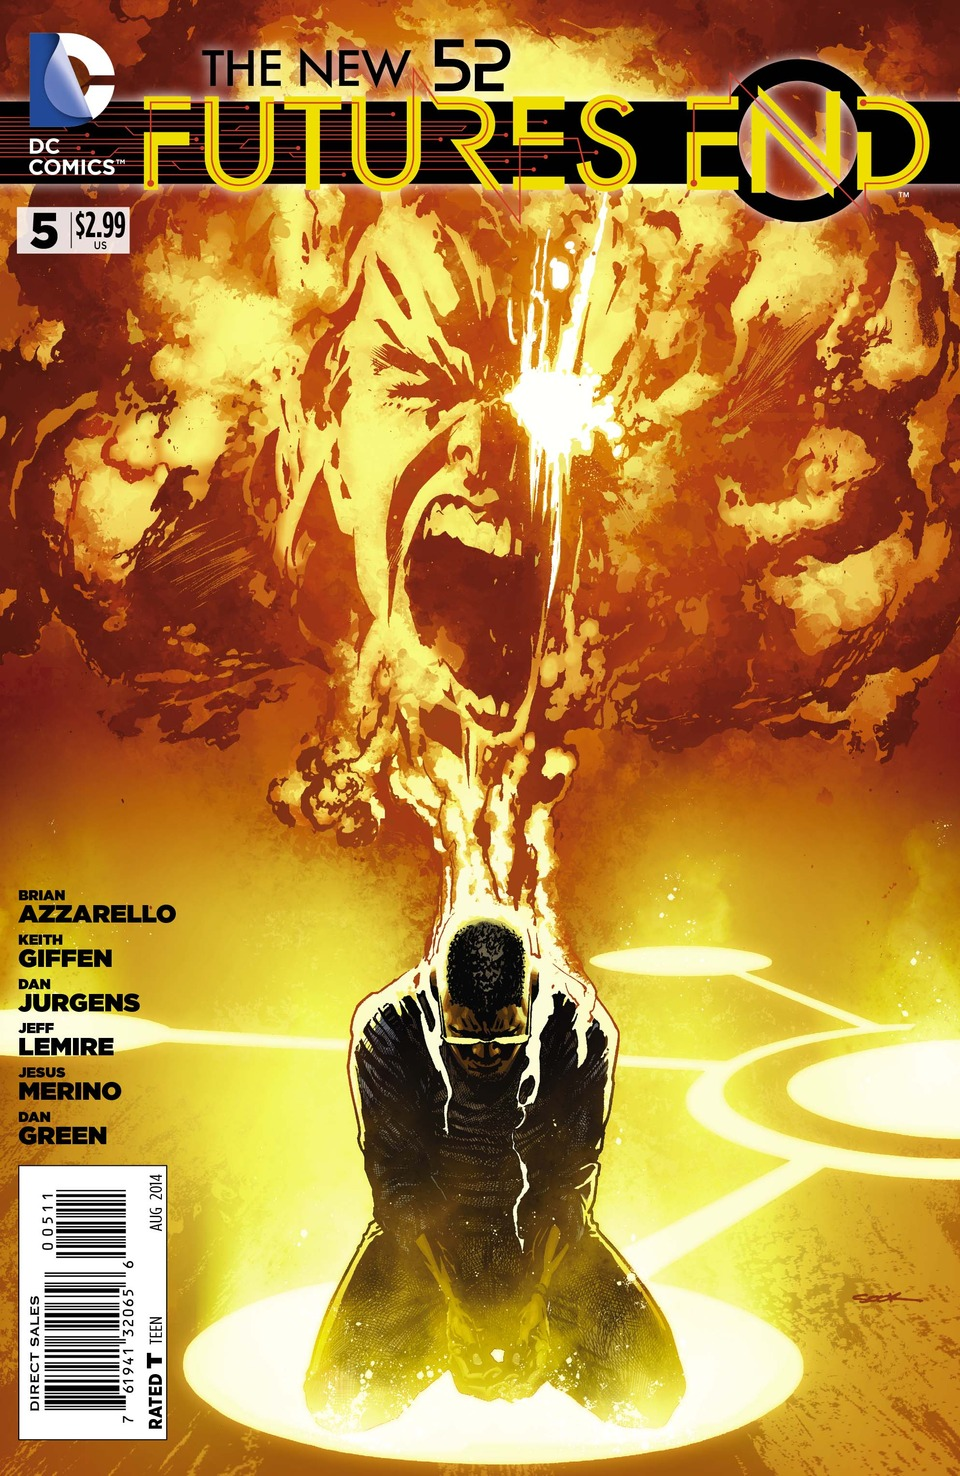 The New 52: Futures End Vol.1 #5